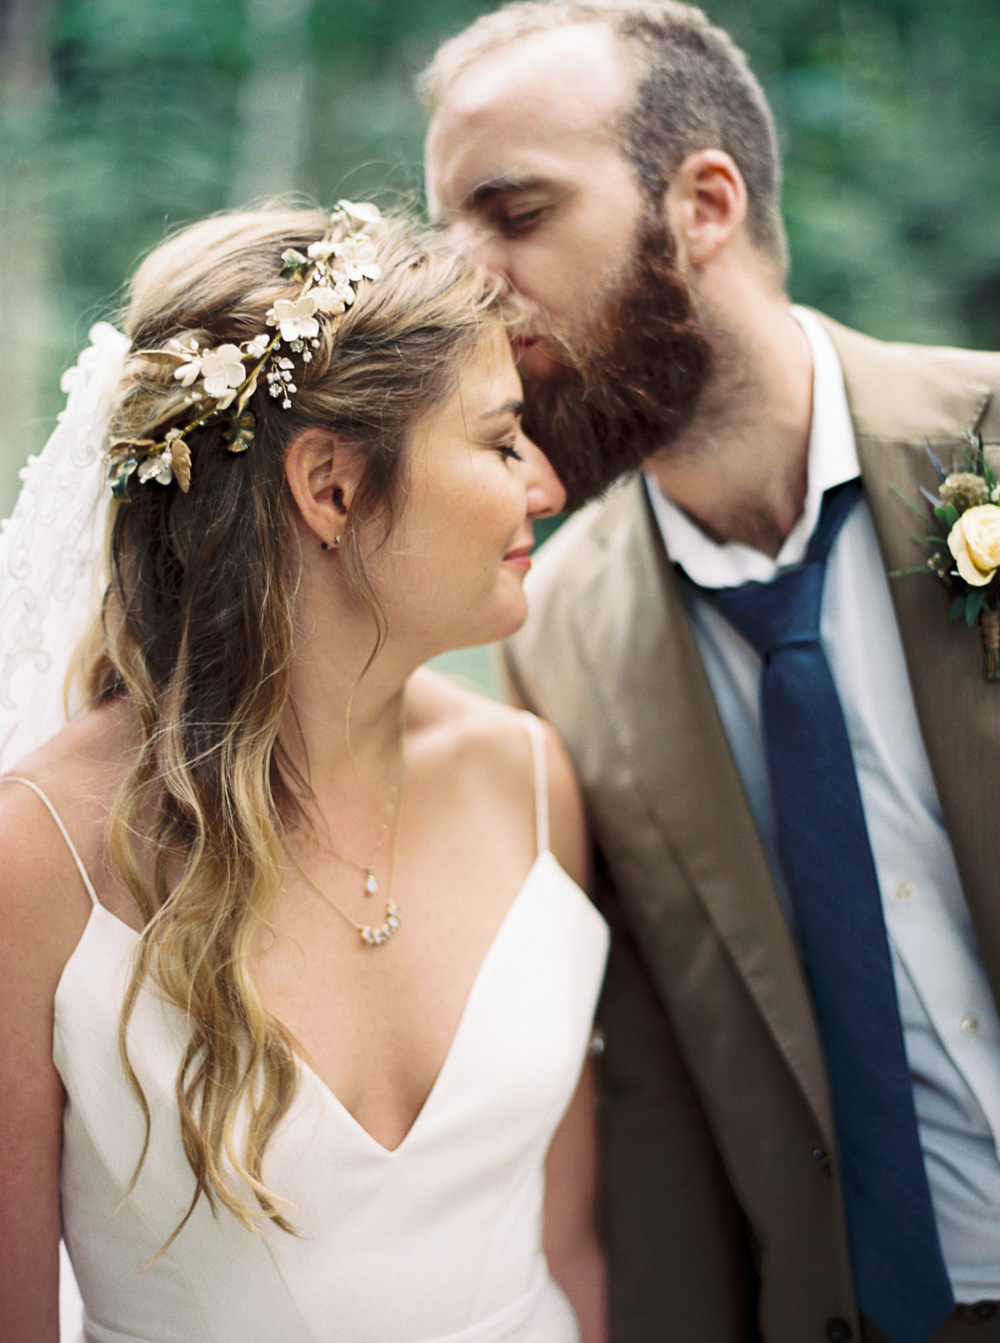 Bride and Groom at Wellspring Spa Wedding at Mt. Rainier with Seattle Wedding Photographer Anna Peters